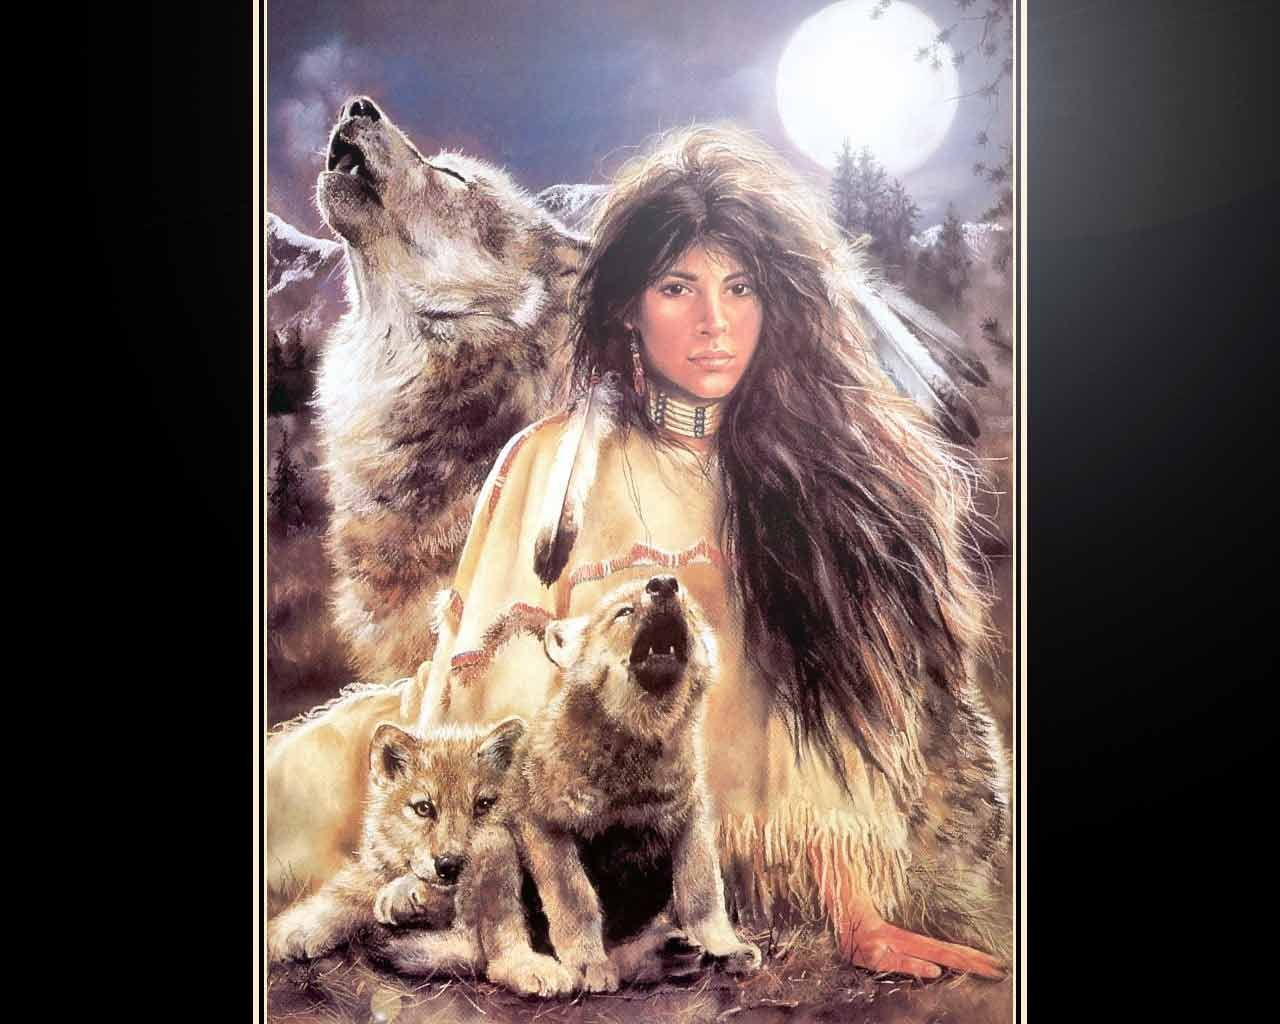 Free Wallpapers Indian Princess With Wolves Wallpaper Design